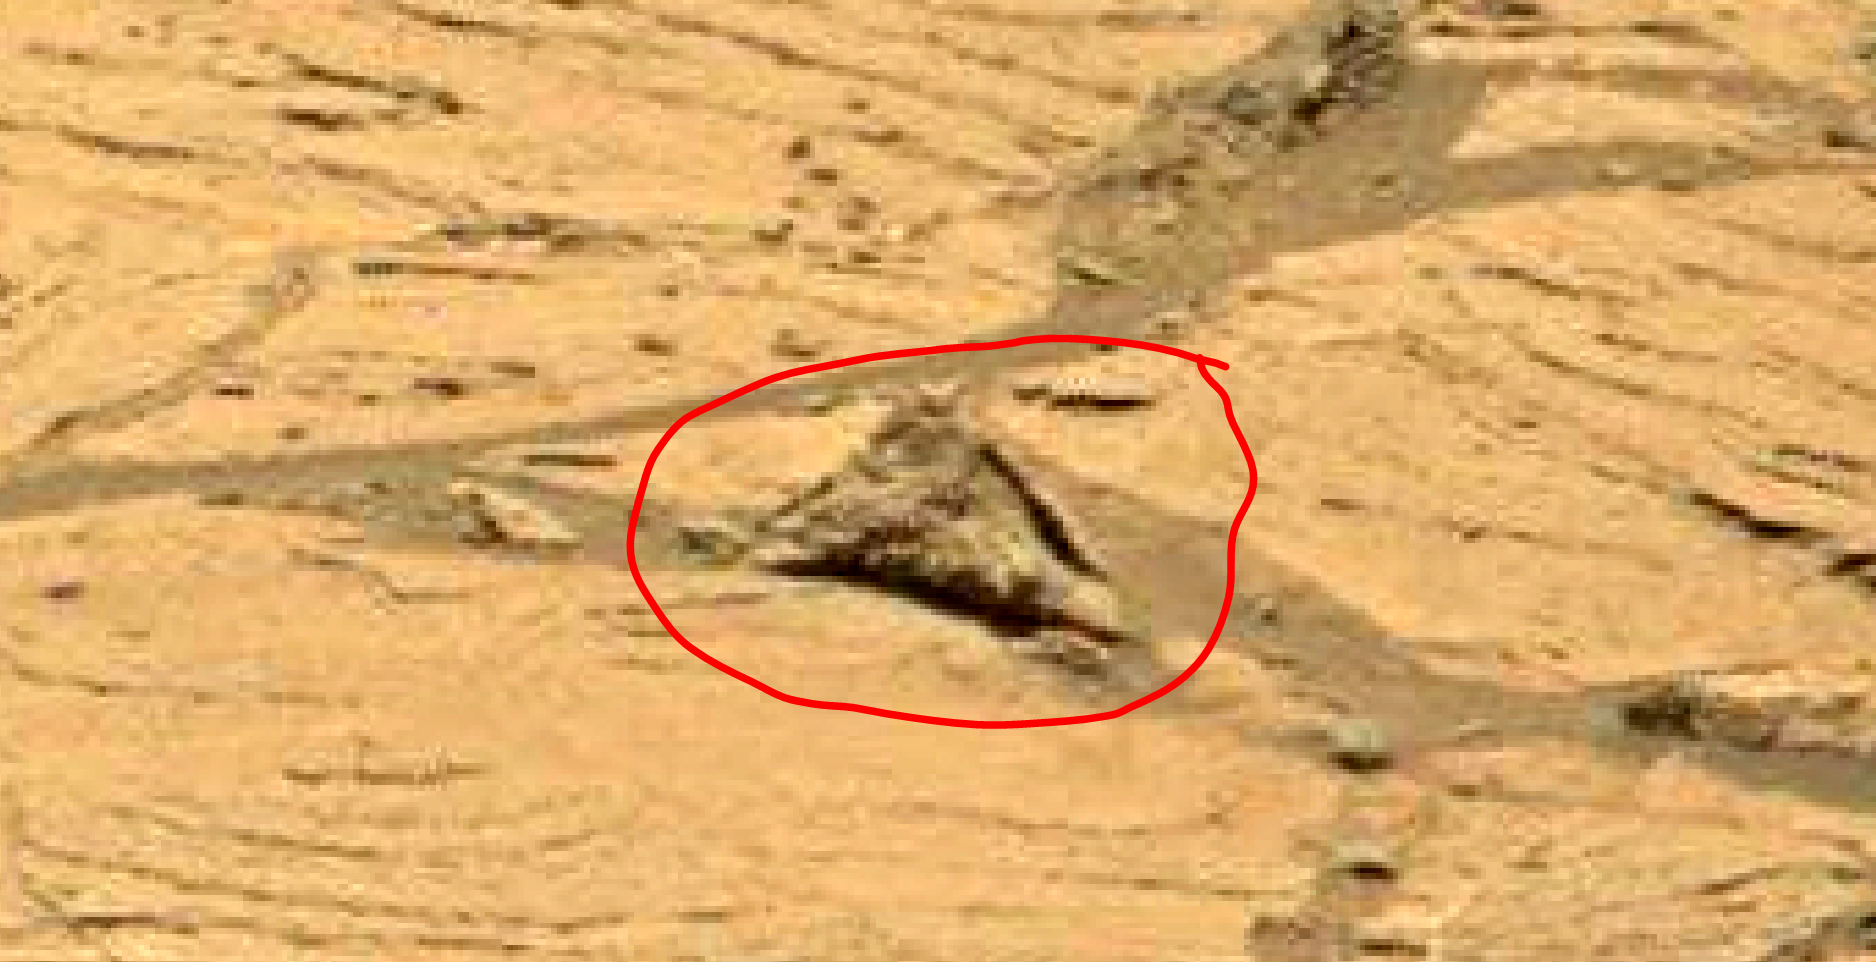 mars sol 1353 anomaly-artifacts 7a was life on mars